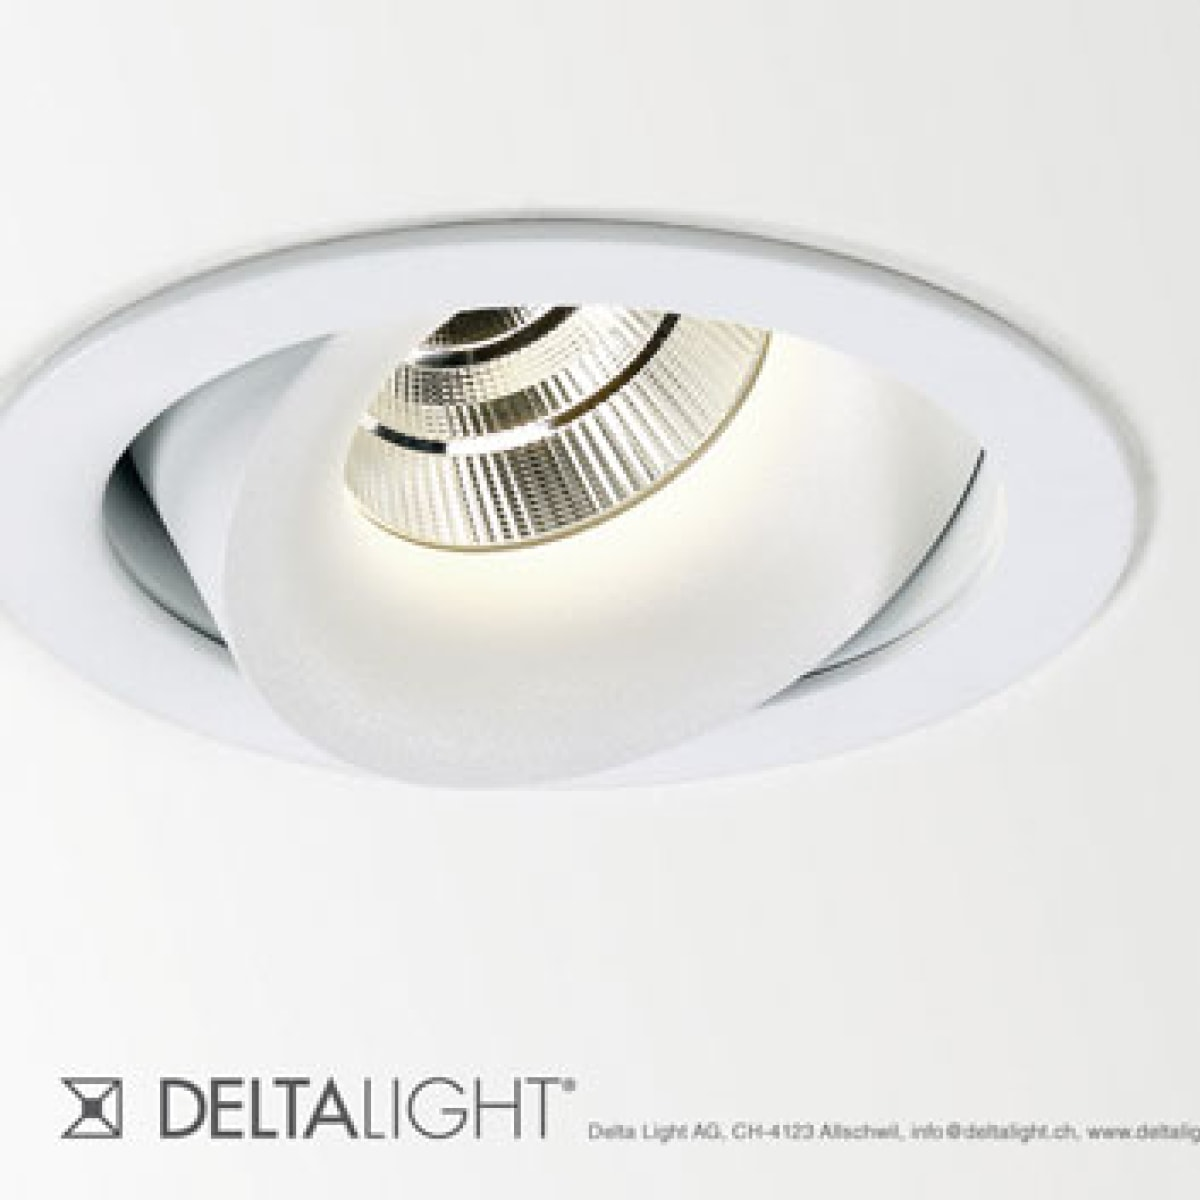 Delta Light AG